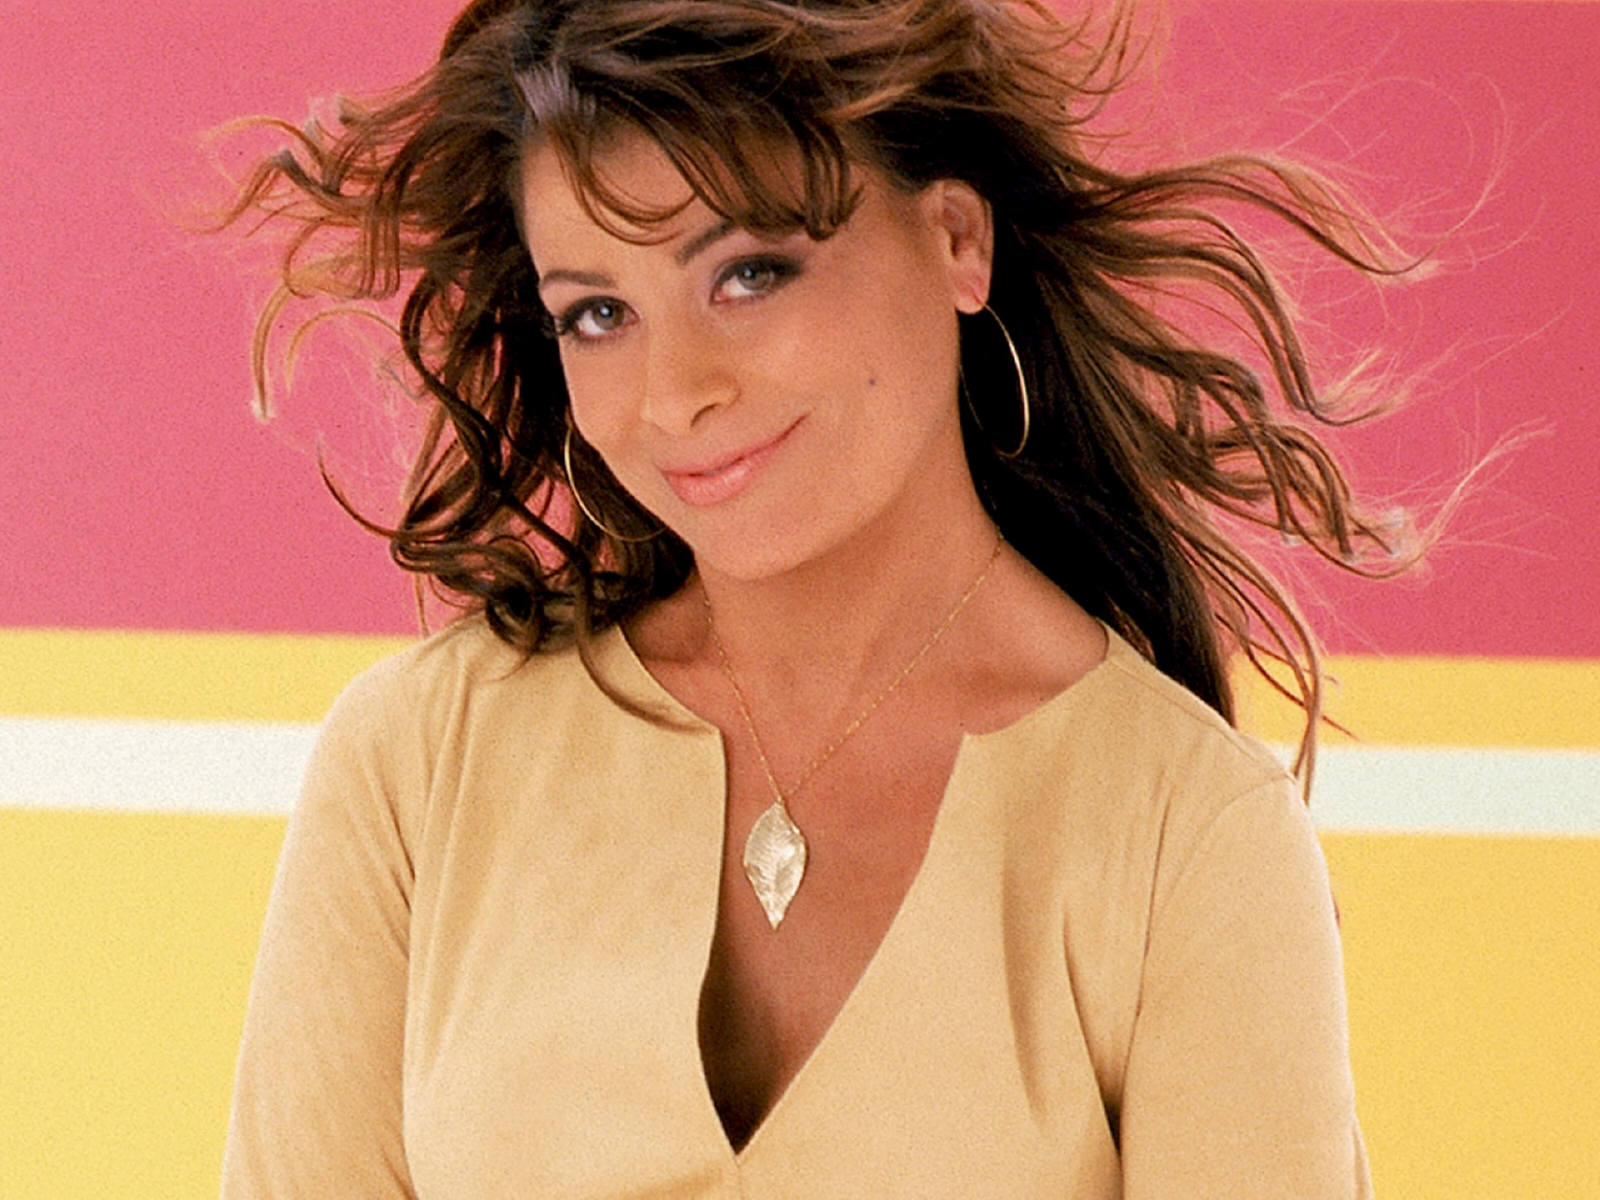 Chatter Busy: Paula Abdul Wallpapers